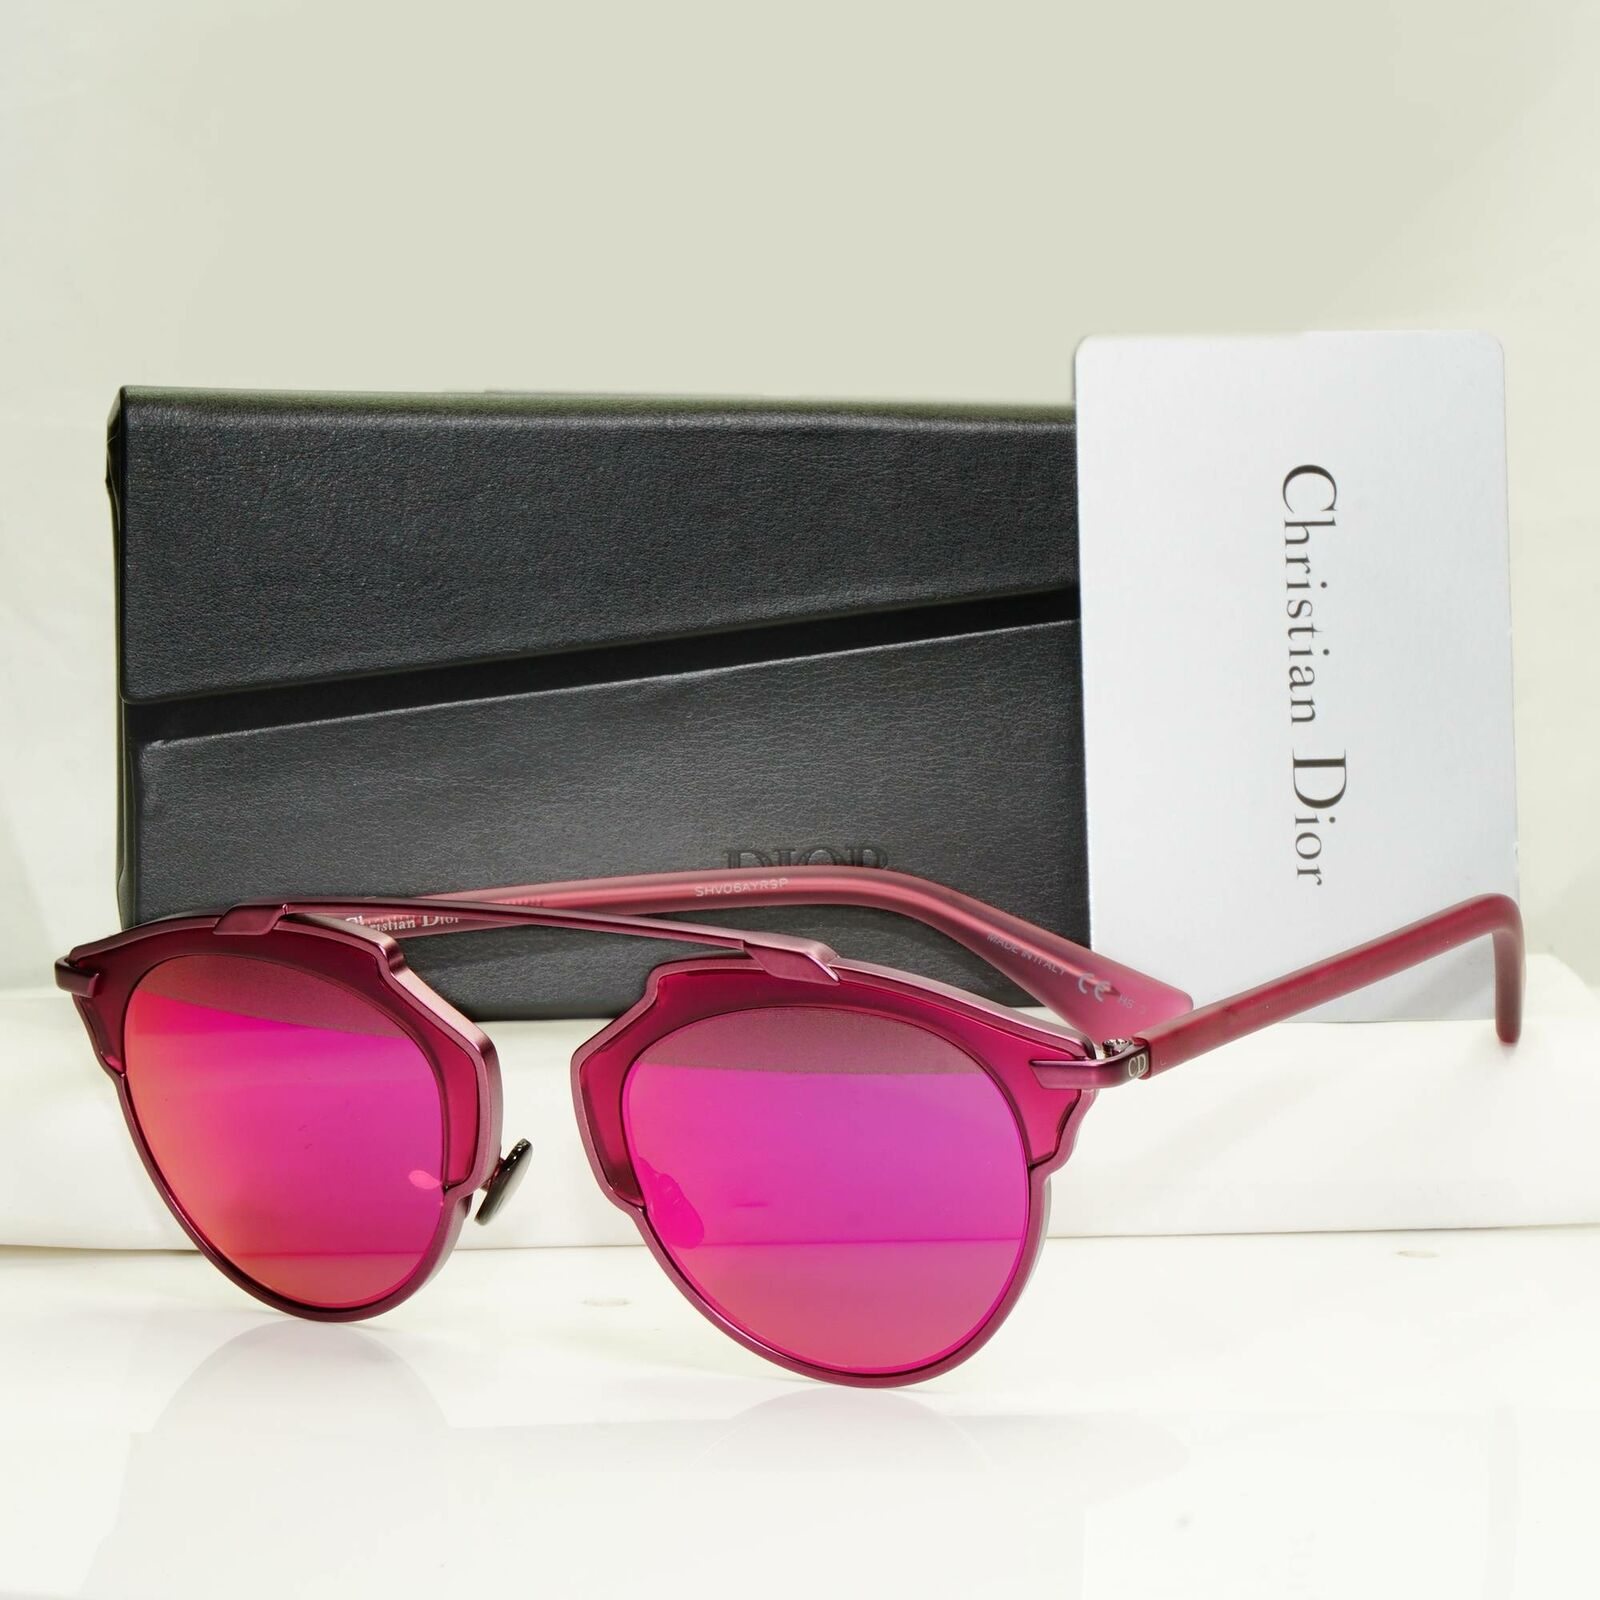 Authentic Dior Womens So Real Iconic Fashion Sunglasses Violet Mirror Metal